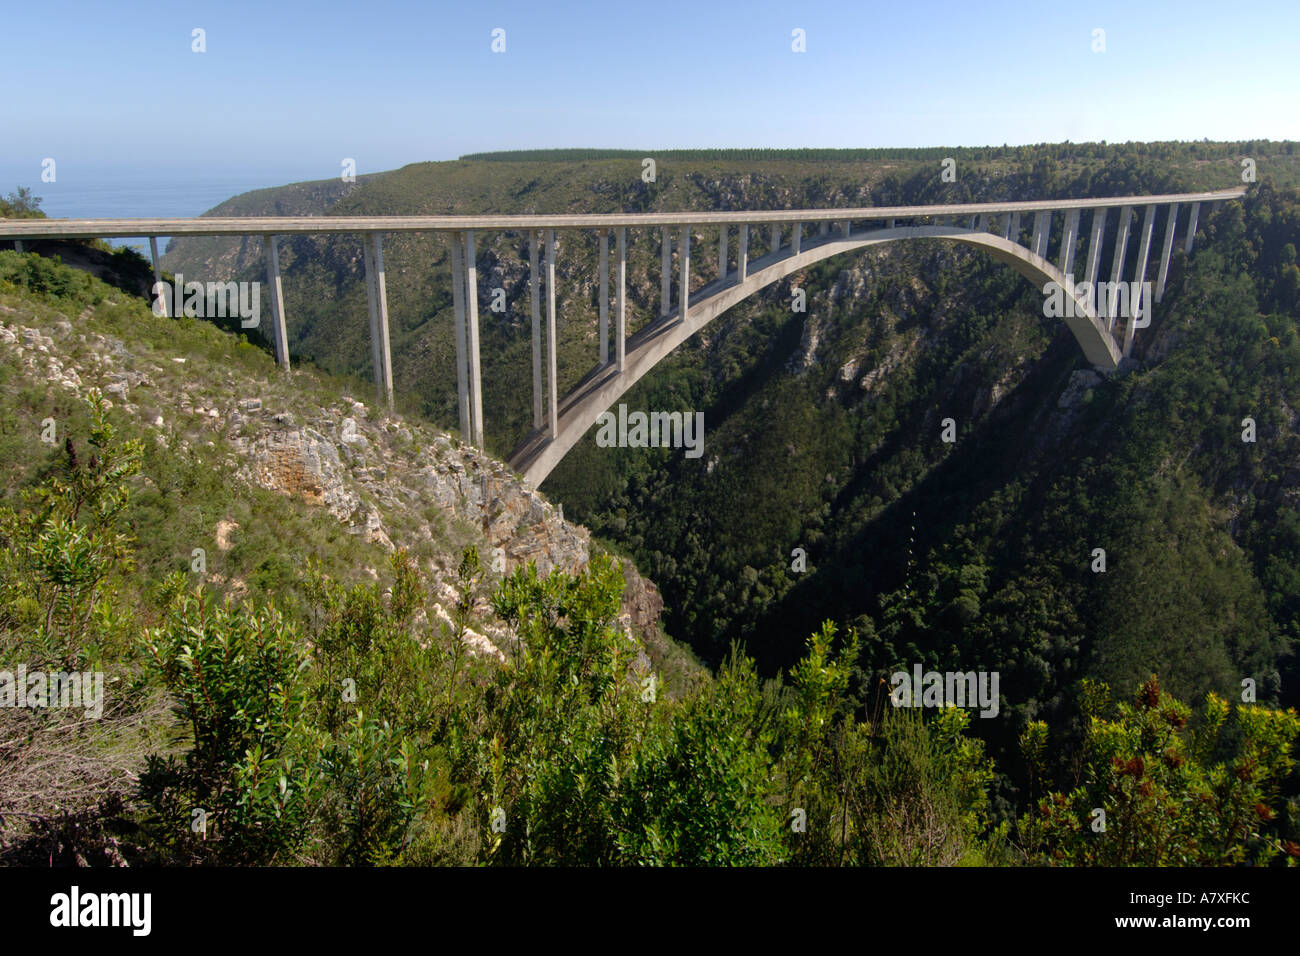 Marvelous The Bloukrans River Bridge Along The Garden Route In South Africa  With Entrancing Stock Photo  The Bloukrans River Bridge Along The Garden Route In South  Africa It Is The Highest Commercial Bungee Jump In The World M With Extraordinary Garden Flowers Ireland Also Garden Of Remembrance In Addition Home And Garden Shows In Texas And What Zone Is Covent Garden As Well As Madison Square Garden Company Additionally What Time Does Covent Garden Close From Alamycom With   Entrancing The Bloukrans River Bridge Along The Garden Route In South Africa  With Extraordinary Stock Photo  The Bloukrans River Bridge Along The Garden Route In South  Africa It Is The Highest Commercial Bungee Jump In The World M And Marvelous Garden Flowers Ireland Also Garden Of Remembrance In Addition Home And Garden Shows In Texas From Alamycom